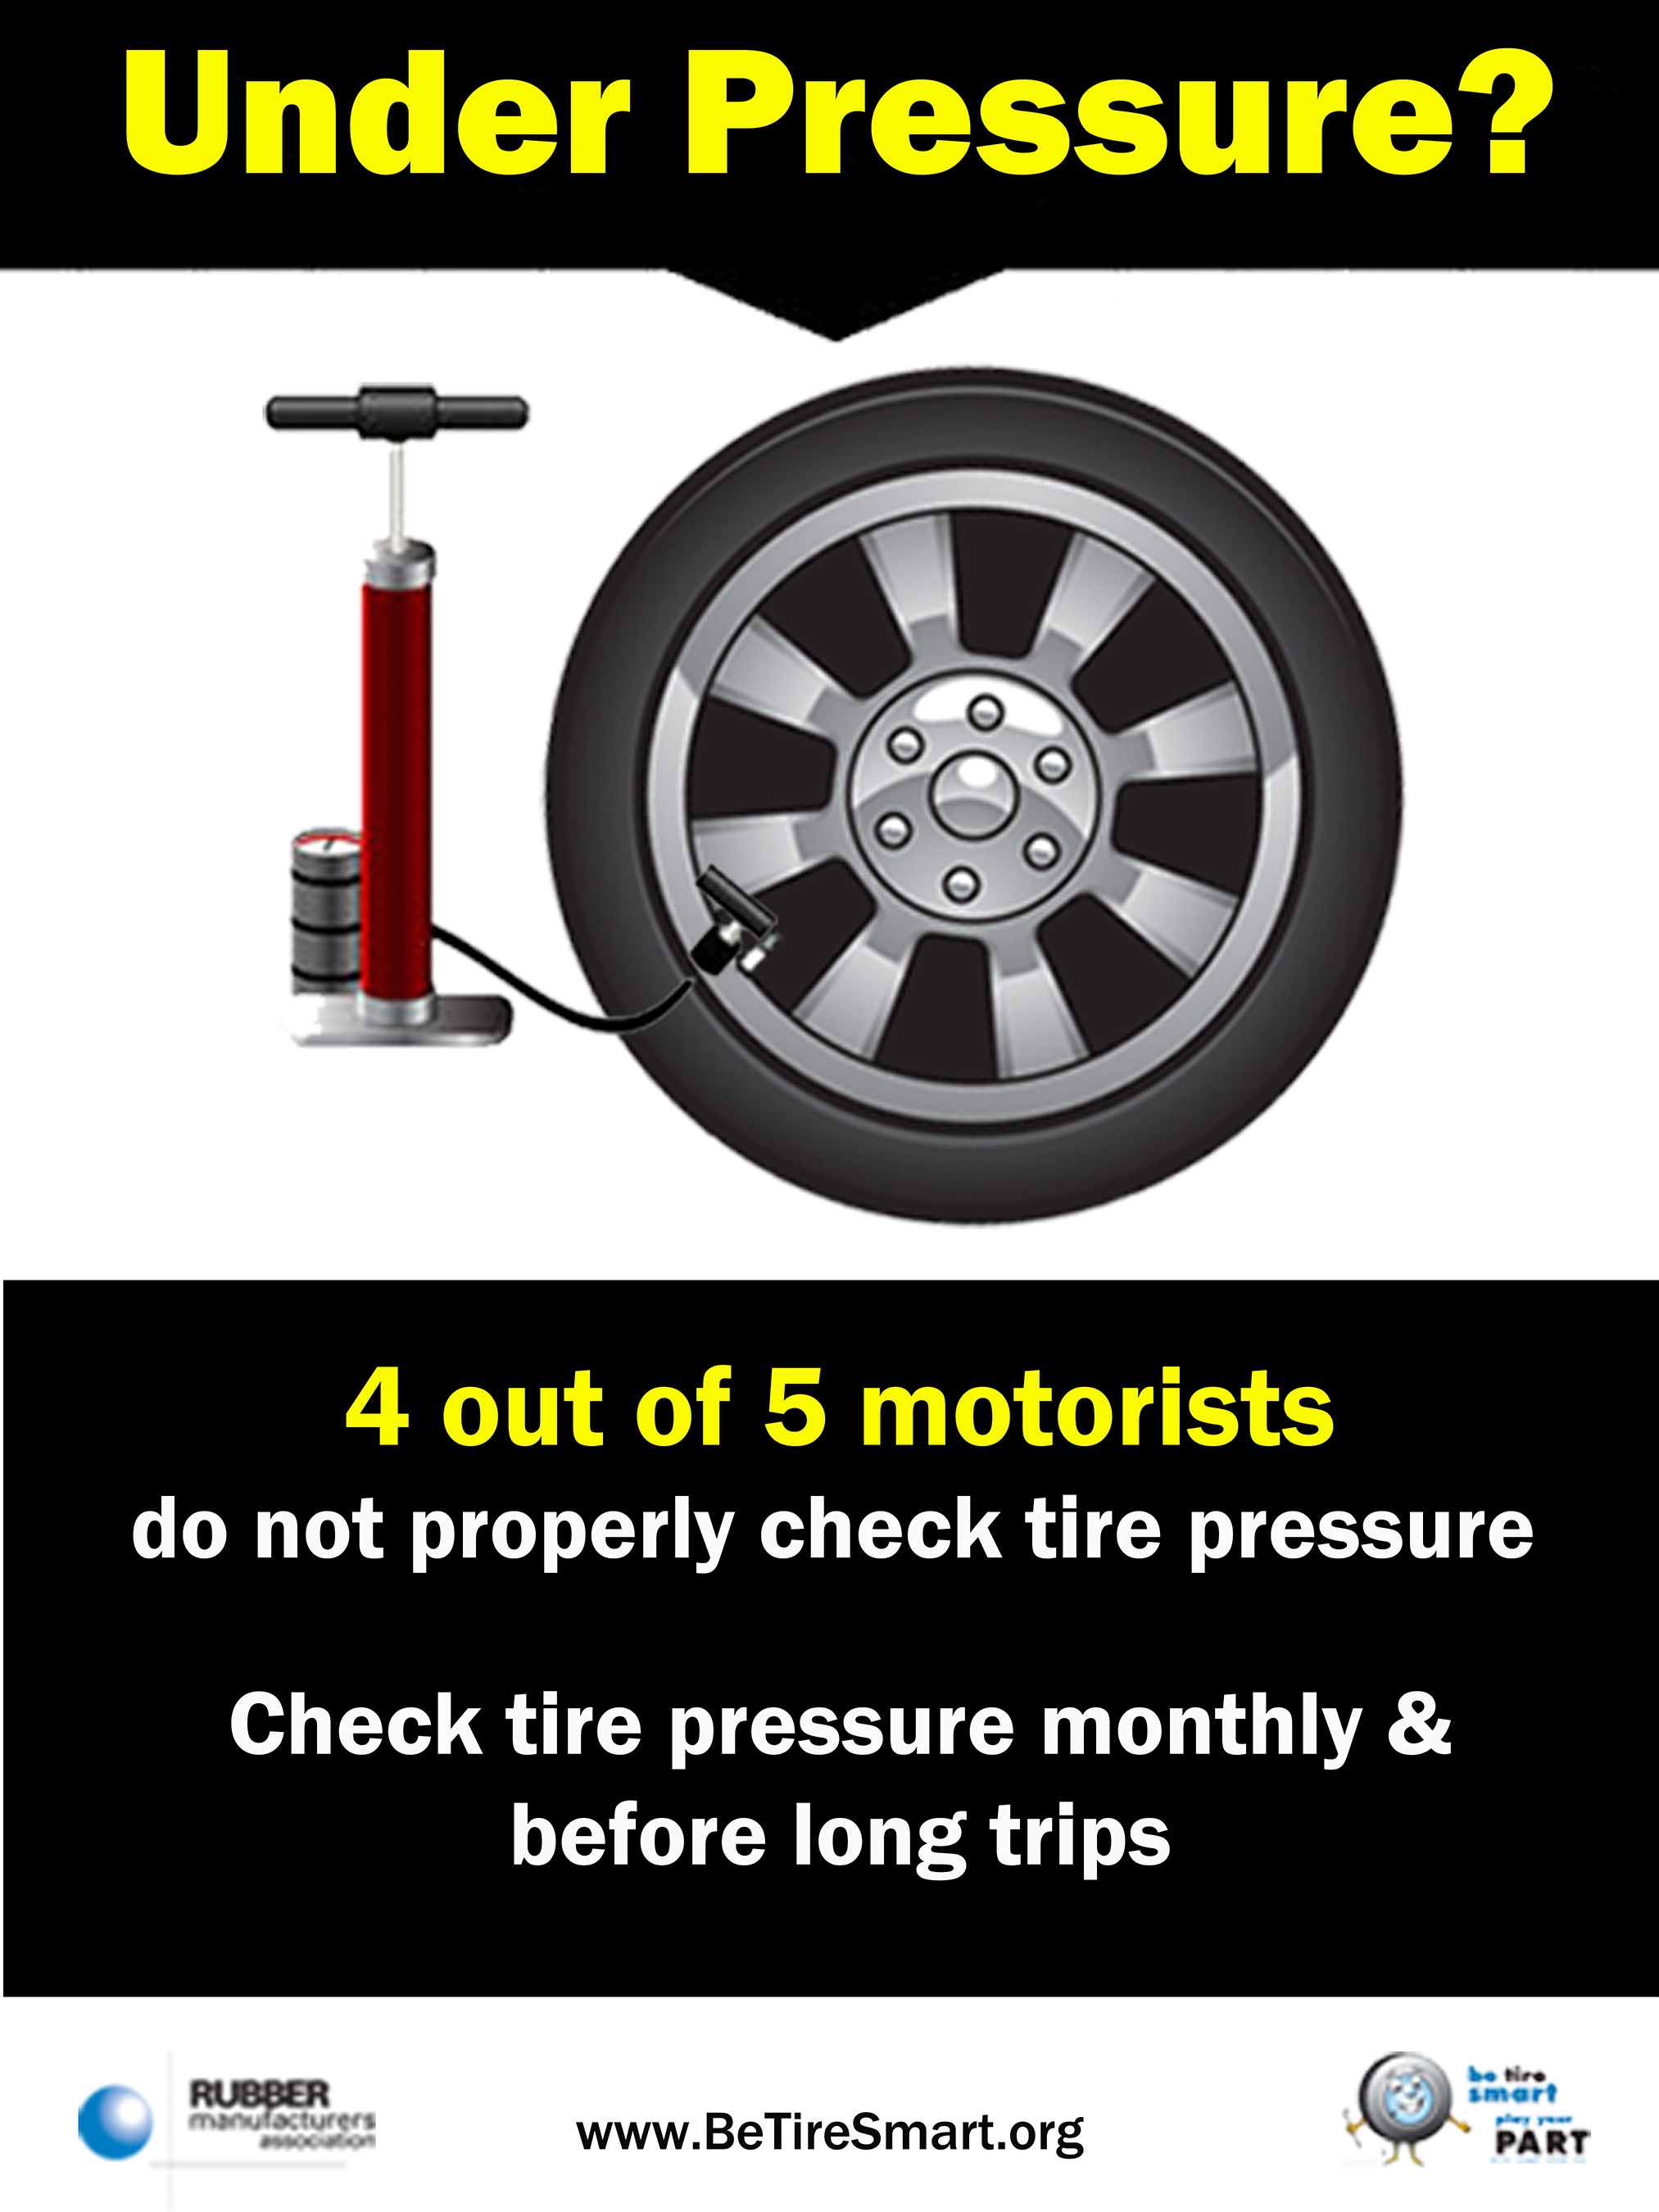 Check tire pressure monthly & before long trips